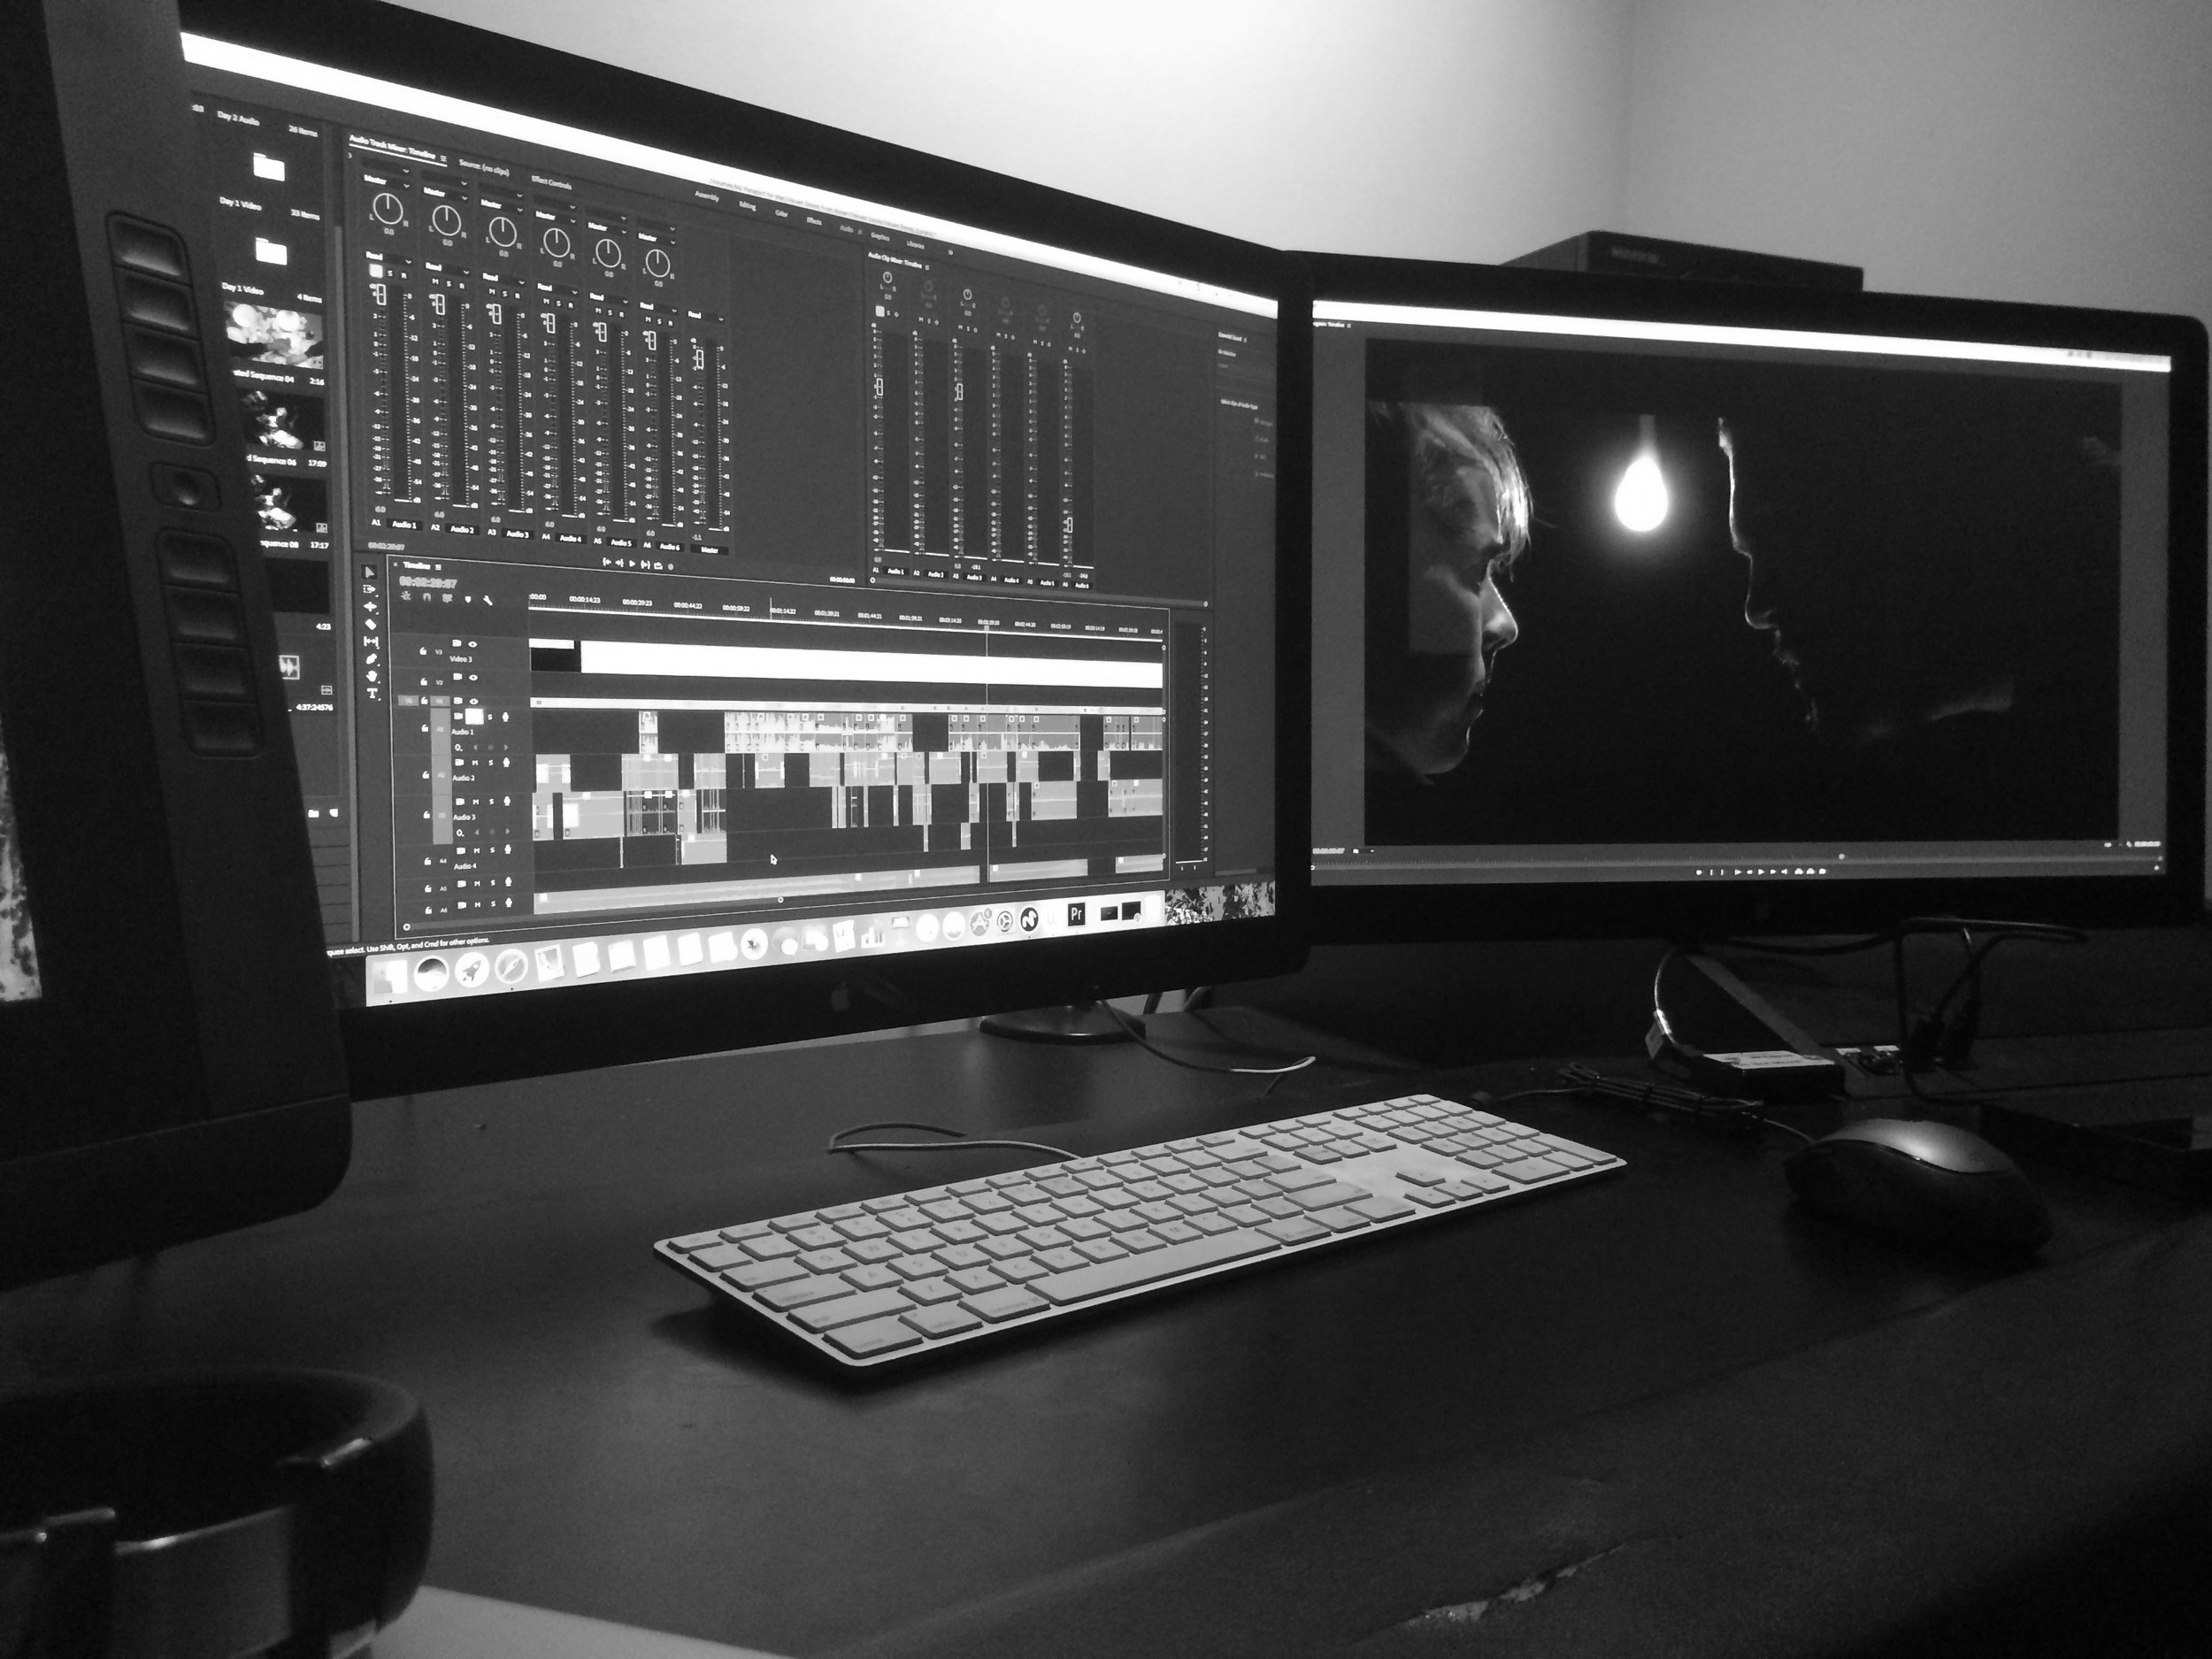 Post-Production - September 2018 - April 2019While we were in principal photography, our lead editor was on set as our digital information technician so he was able to properly sort all 14 TB of footage and start the edit.We're currently in post-production and are aiming for a picture lock by Christmas.In 2019 our sound team will really kick into gear working on foley, FX, and mixing, our VFX team will finalize their shots, we'll begin color grading, conduct ADR, and our composers will score the piece as we ramp up marketing and move closer to release.